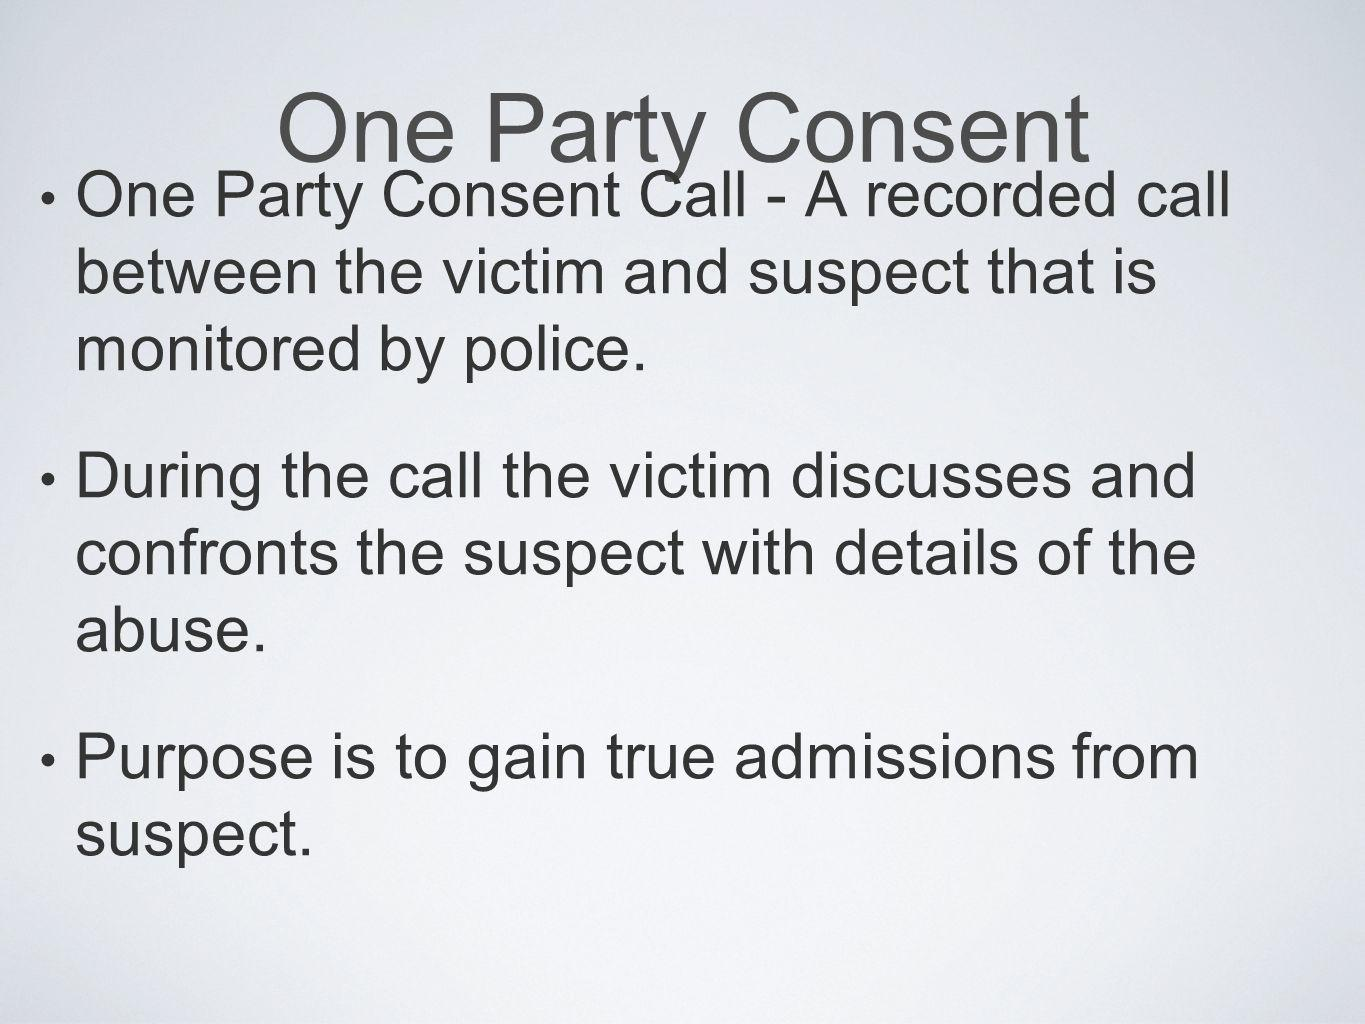 One Party Consent One Party Consent Call - A recorded call between the victim and suspect that is monitored by police.